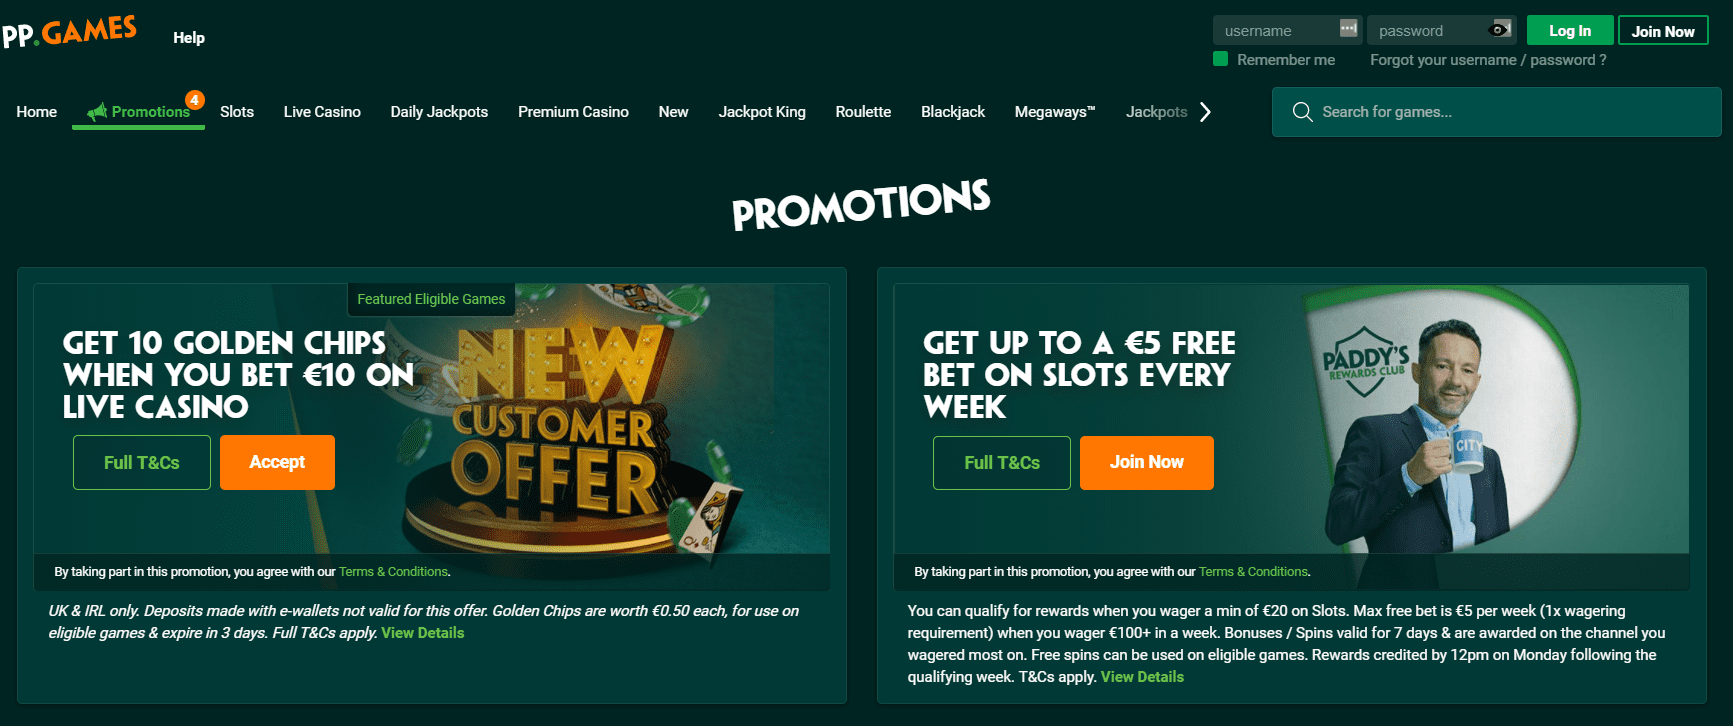 PaddyPower promotions